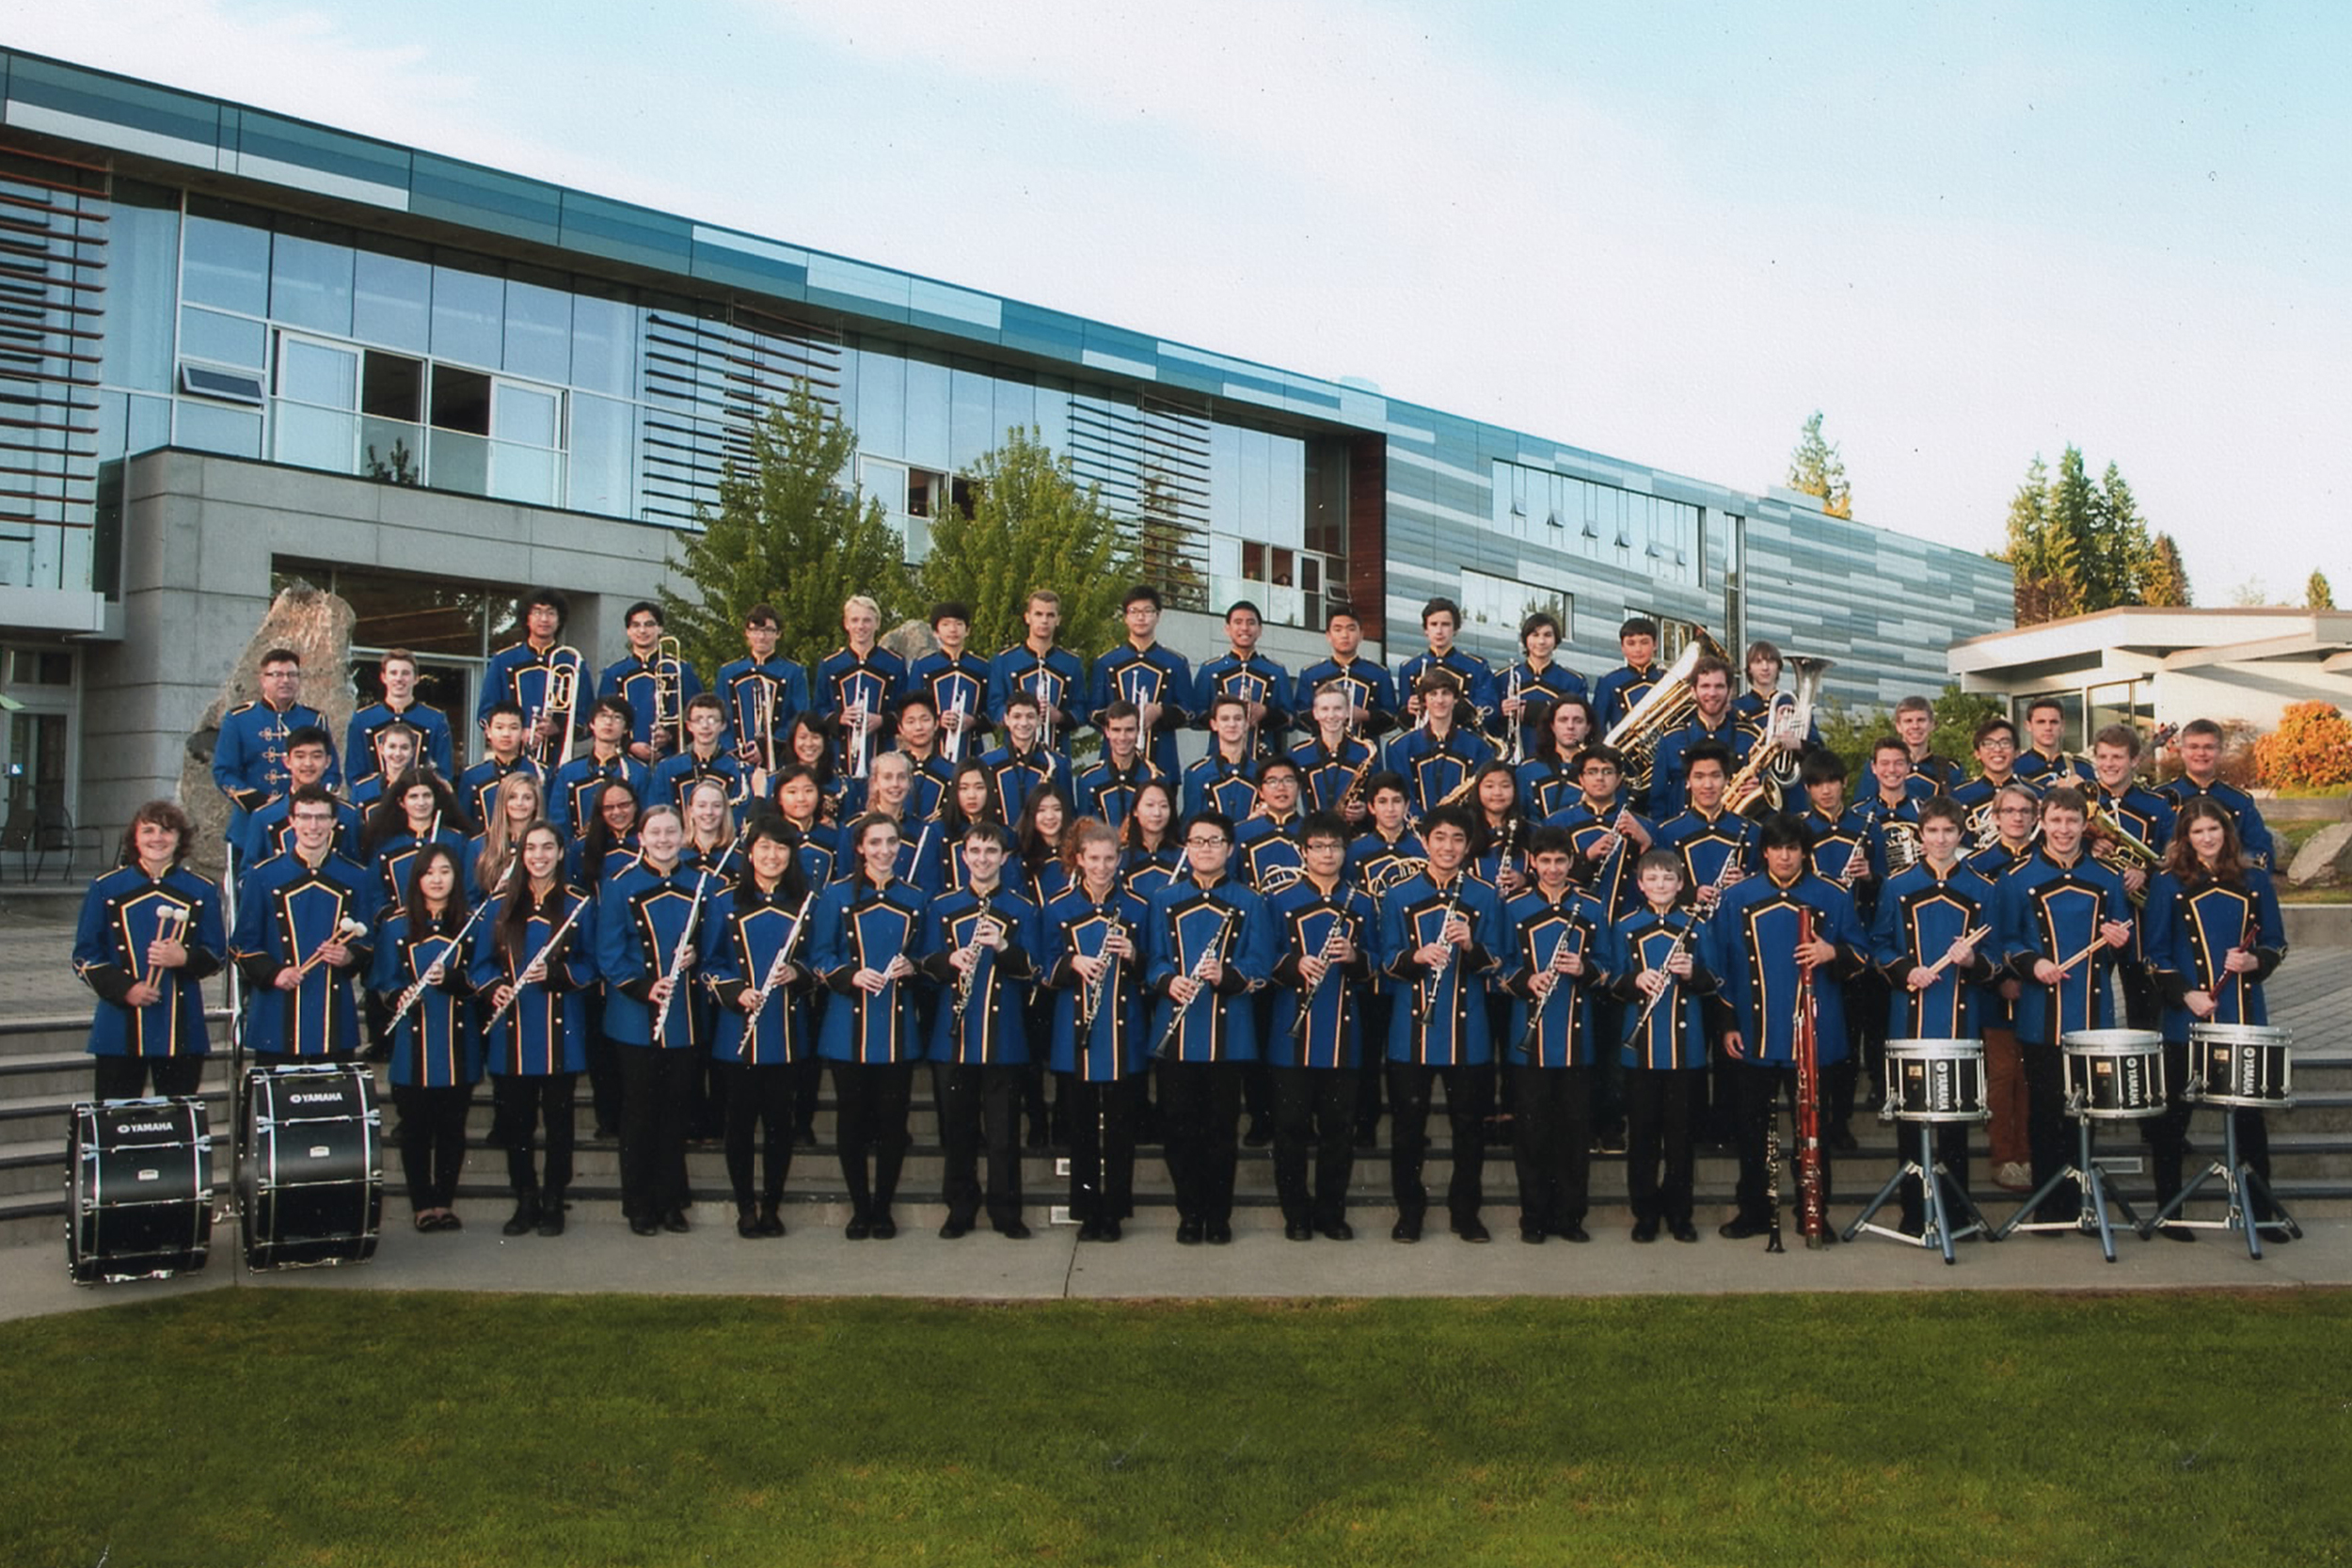 West Vancouver Symphonic Band 2014 (bass drum front row second from left)